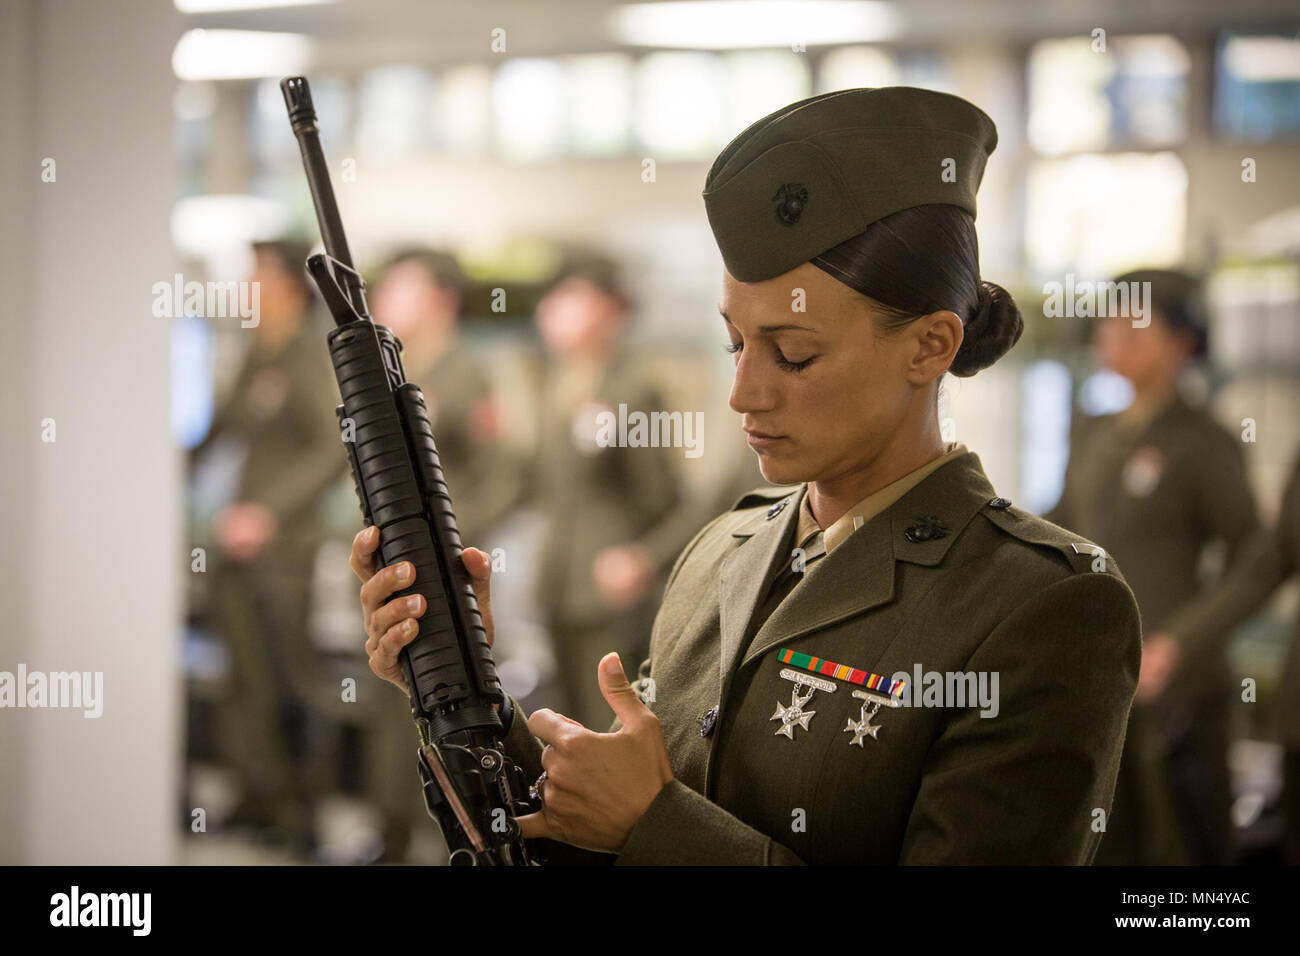 U.S. Marine Corps 1st Lt. Sarah B. Snody, a series commander of November Company, 4th Recruit Training Battalion, inspects a Marine's rifle Aug. 22, 2017, on Parris Island, S.C. Formal inspections held by sergeants and officers, like Snody, 30, from Alton, Ill., ensure Marines have properly fitted uniforms as well as possess attention to detail, bearing, confidence and discipline. Oscar Company is scheduled to graduate Aug. 25, 2017. Parris Island has been the site of Marine Corps recruit training since Nov. 1, 1915. Today, approximately 20,000 recruits come to Parris Island annually for the c - Stock Image